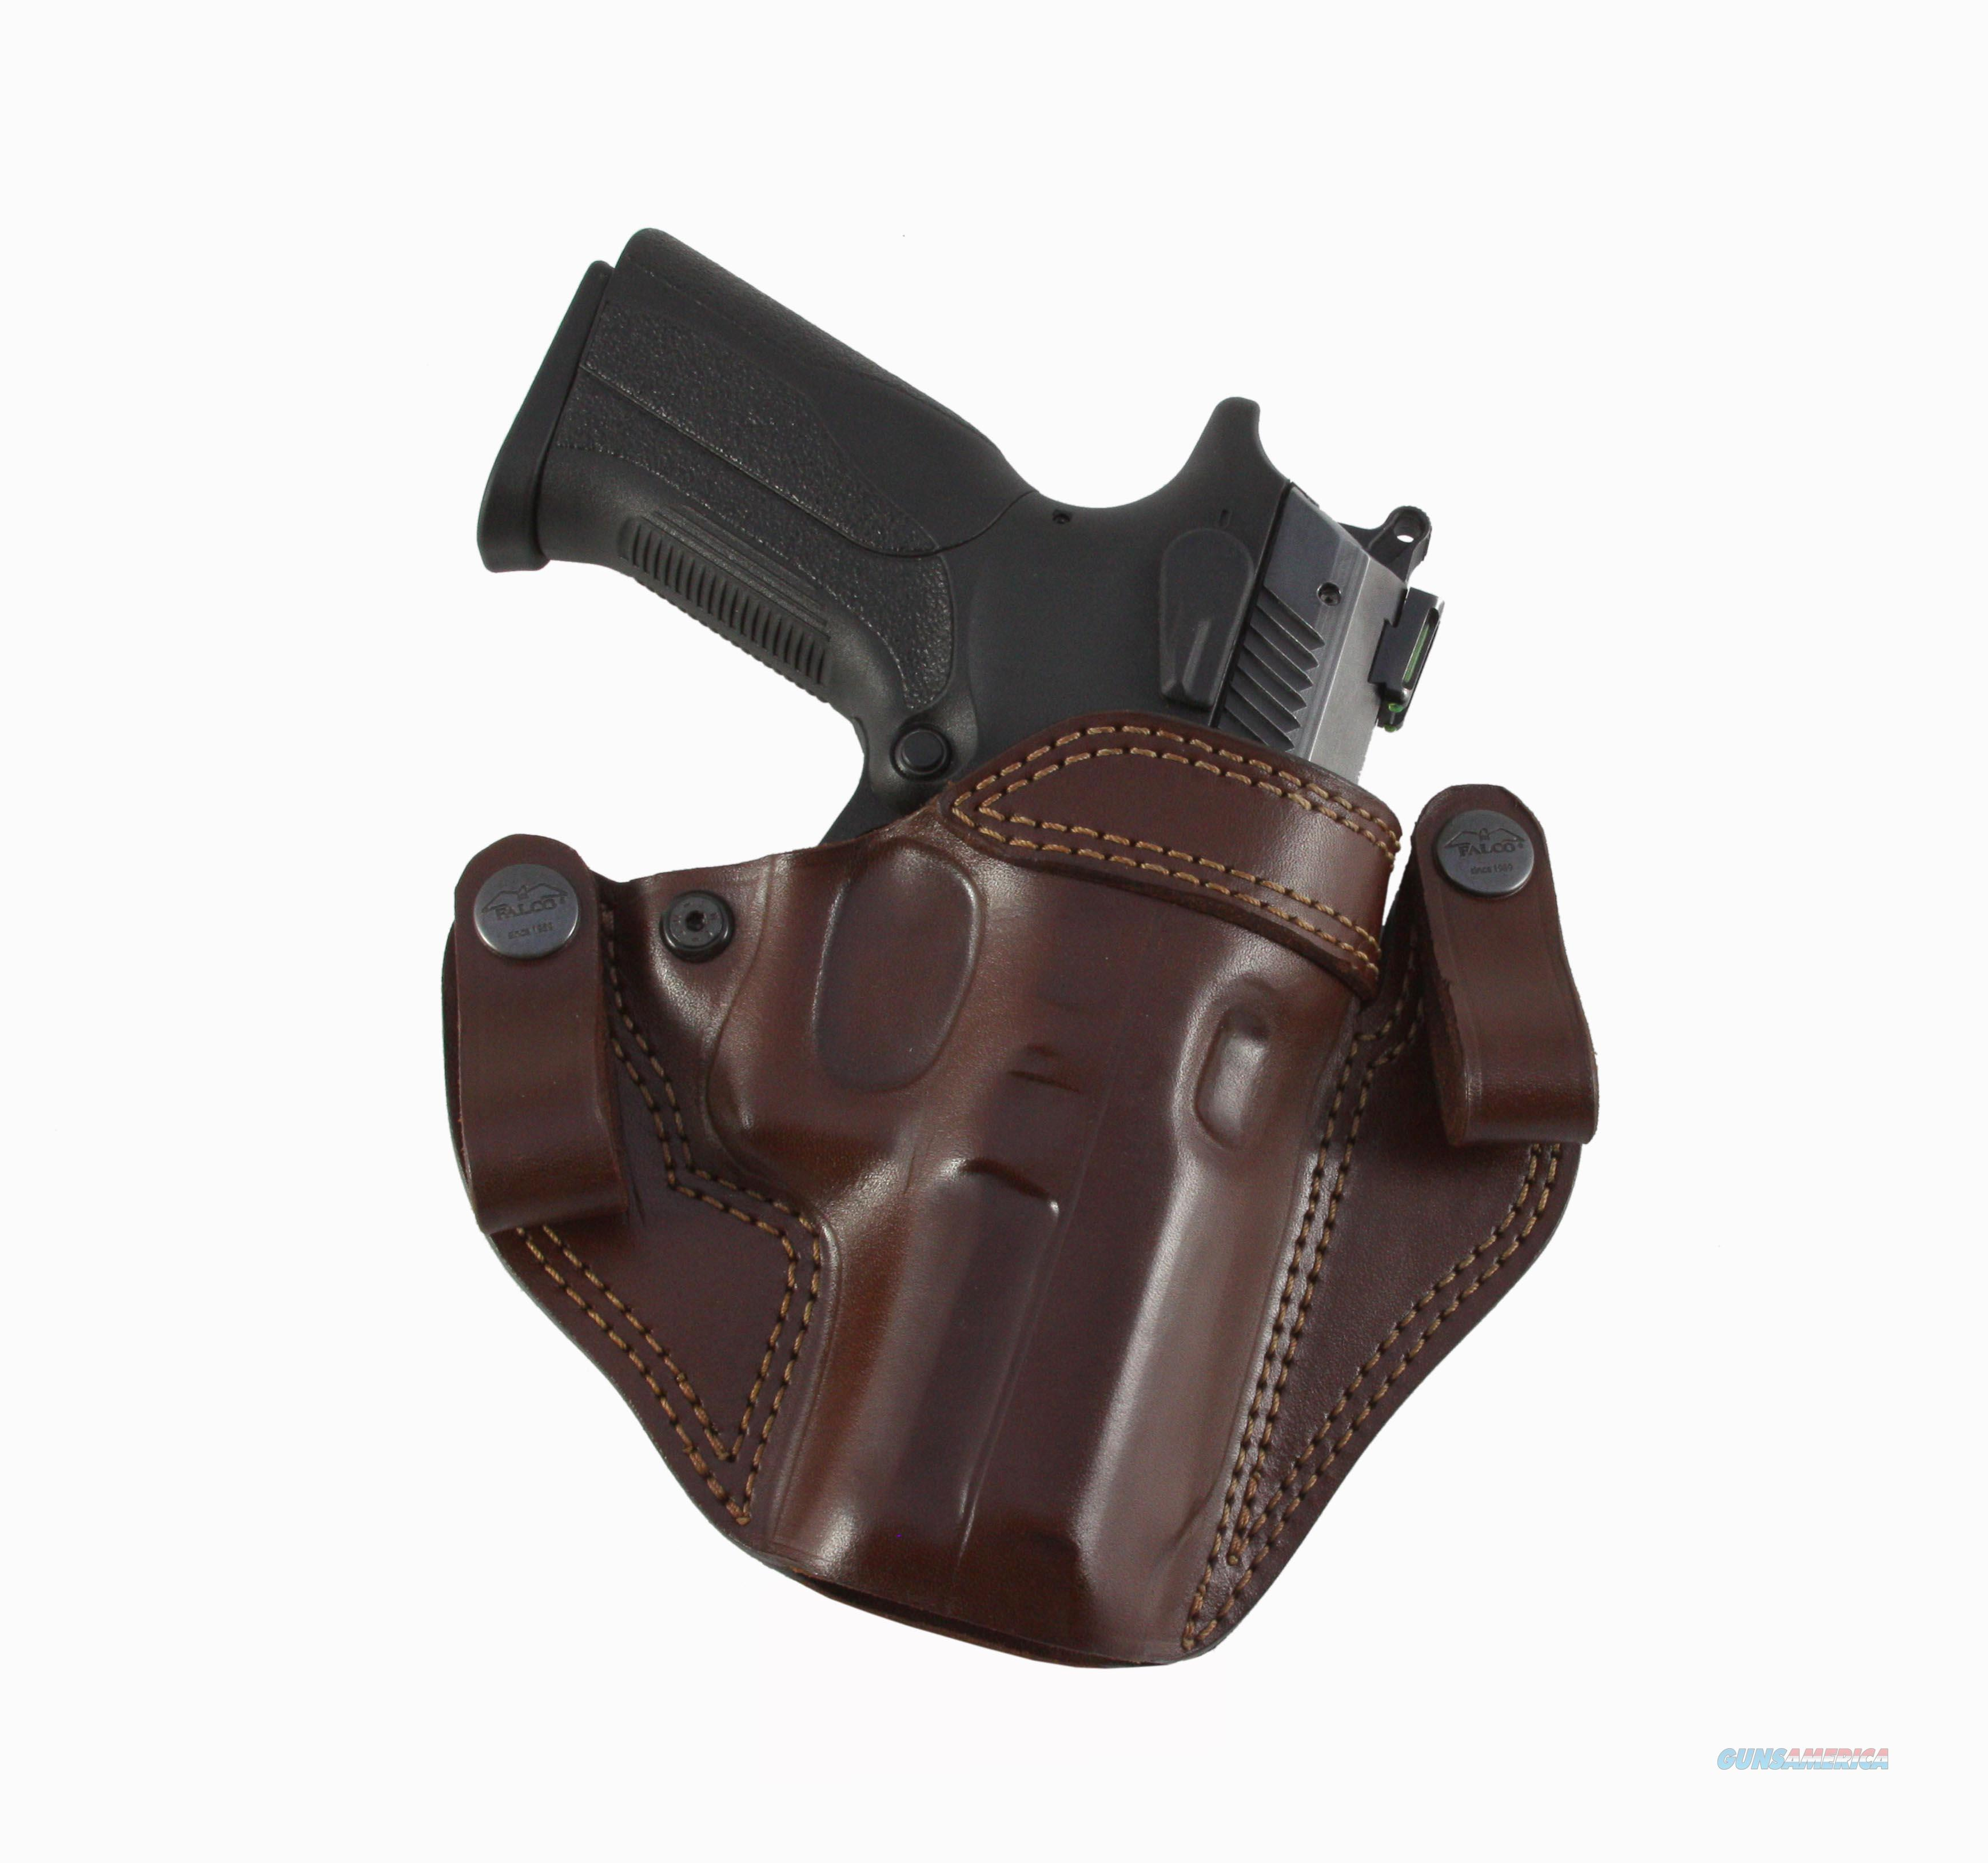 IWB Holster for Concealed Gun Carry Heckler & Koch USP 9mm  Non-Guns > Holsters and Gunleather > Concealed Carry